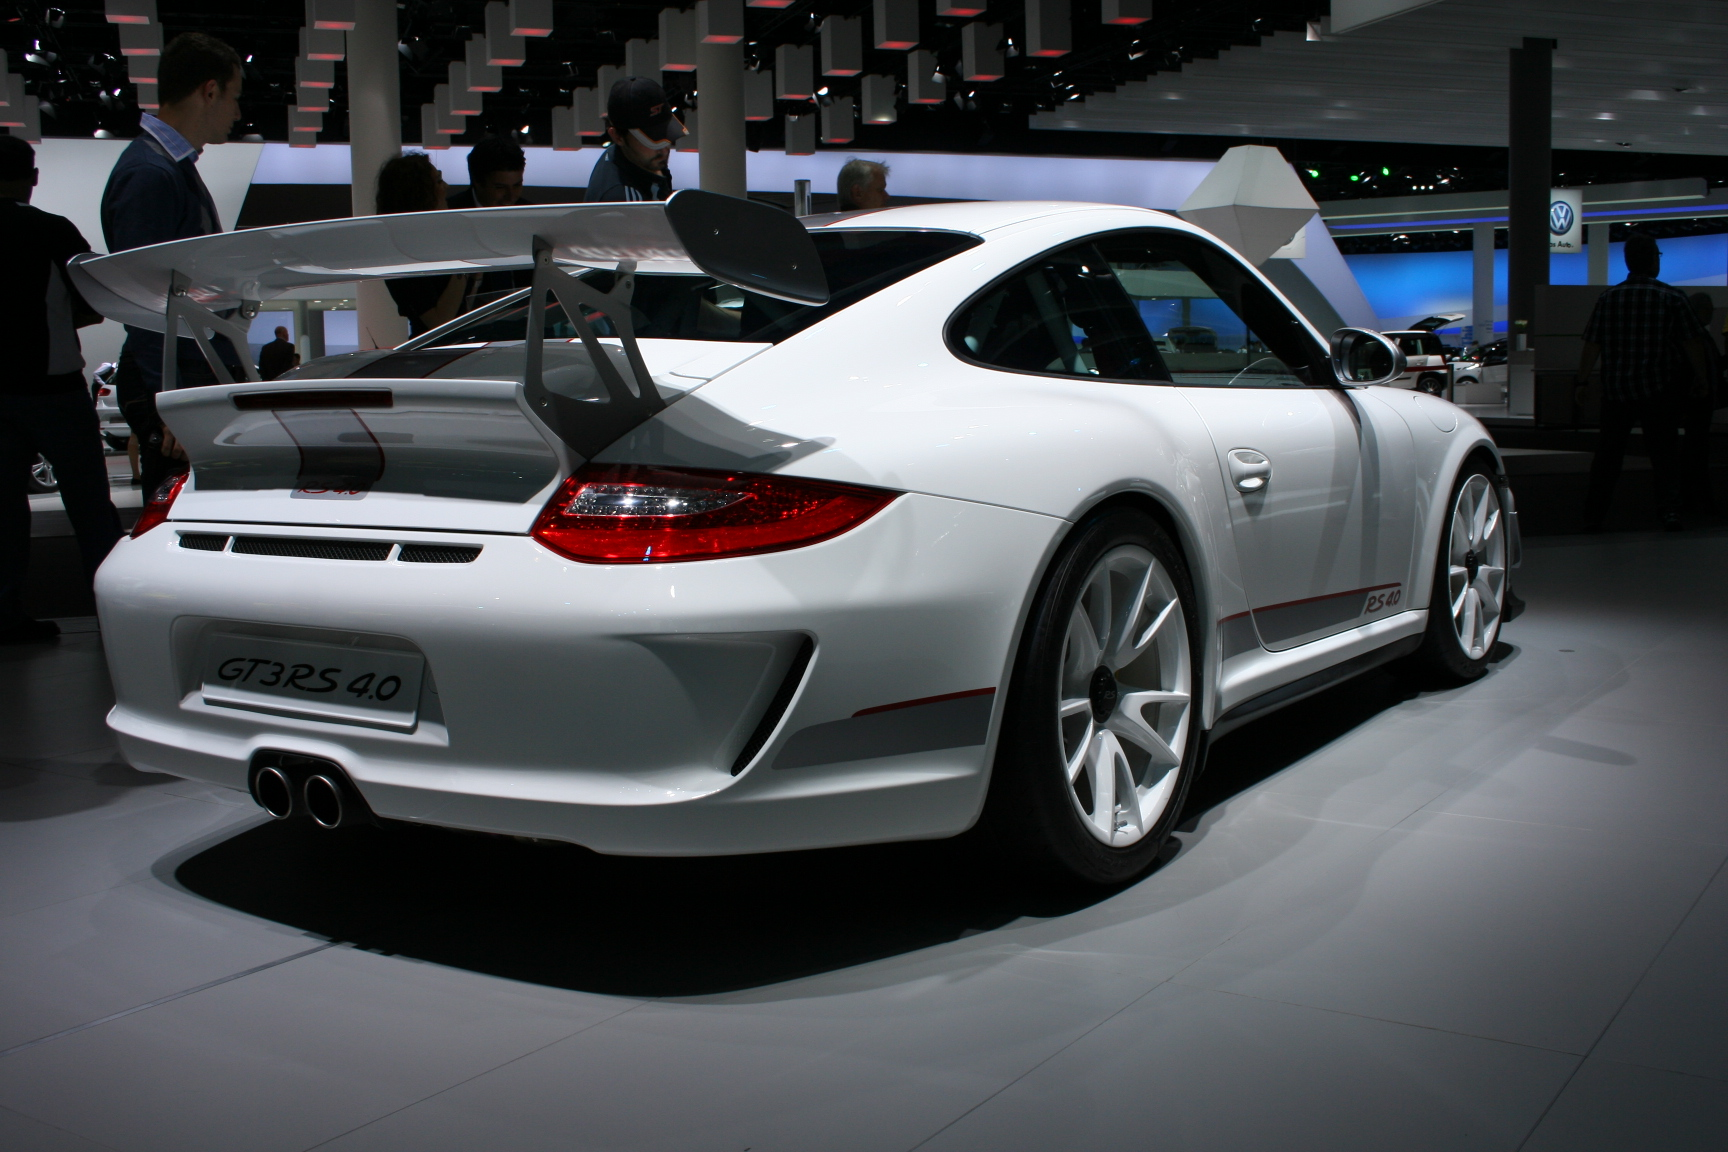 file porsche 911 gt3 rs 4 0 iaa wikimedia commons. Black Bedroom Furniture Sets. Home Design Ideas